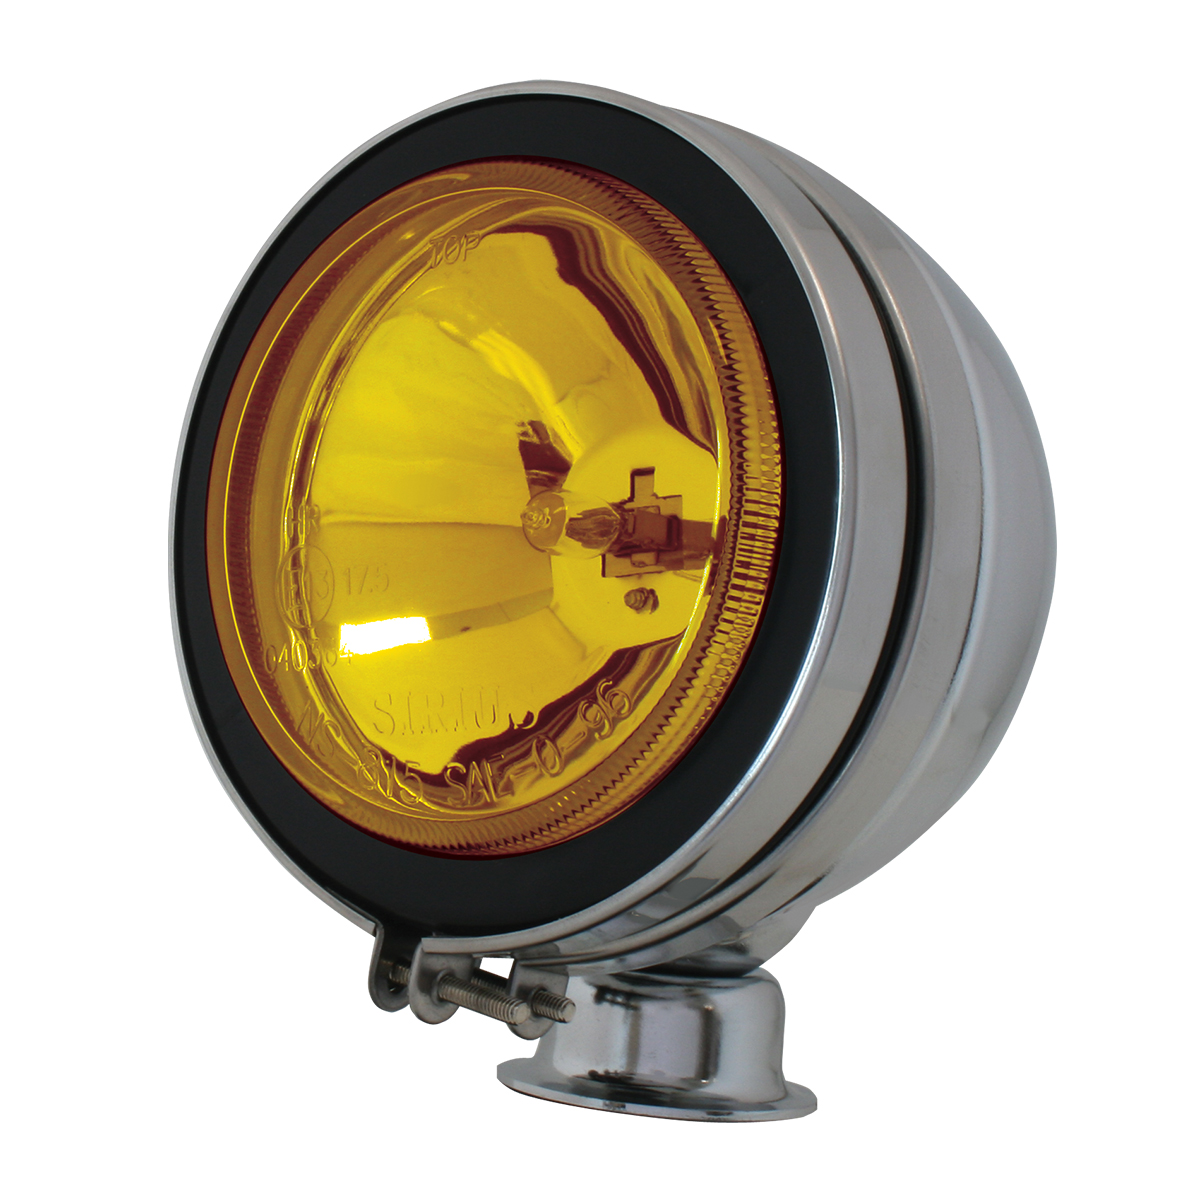 "#80633 5"" Chrome Plated Off-Road Light 100 watts - Amber"